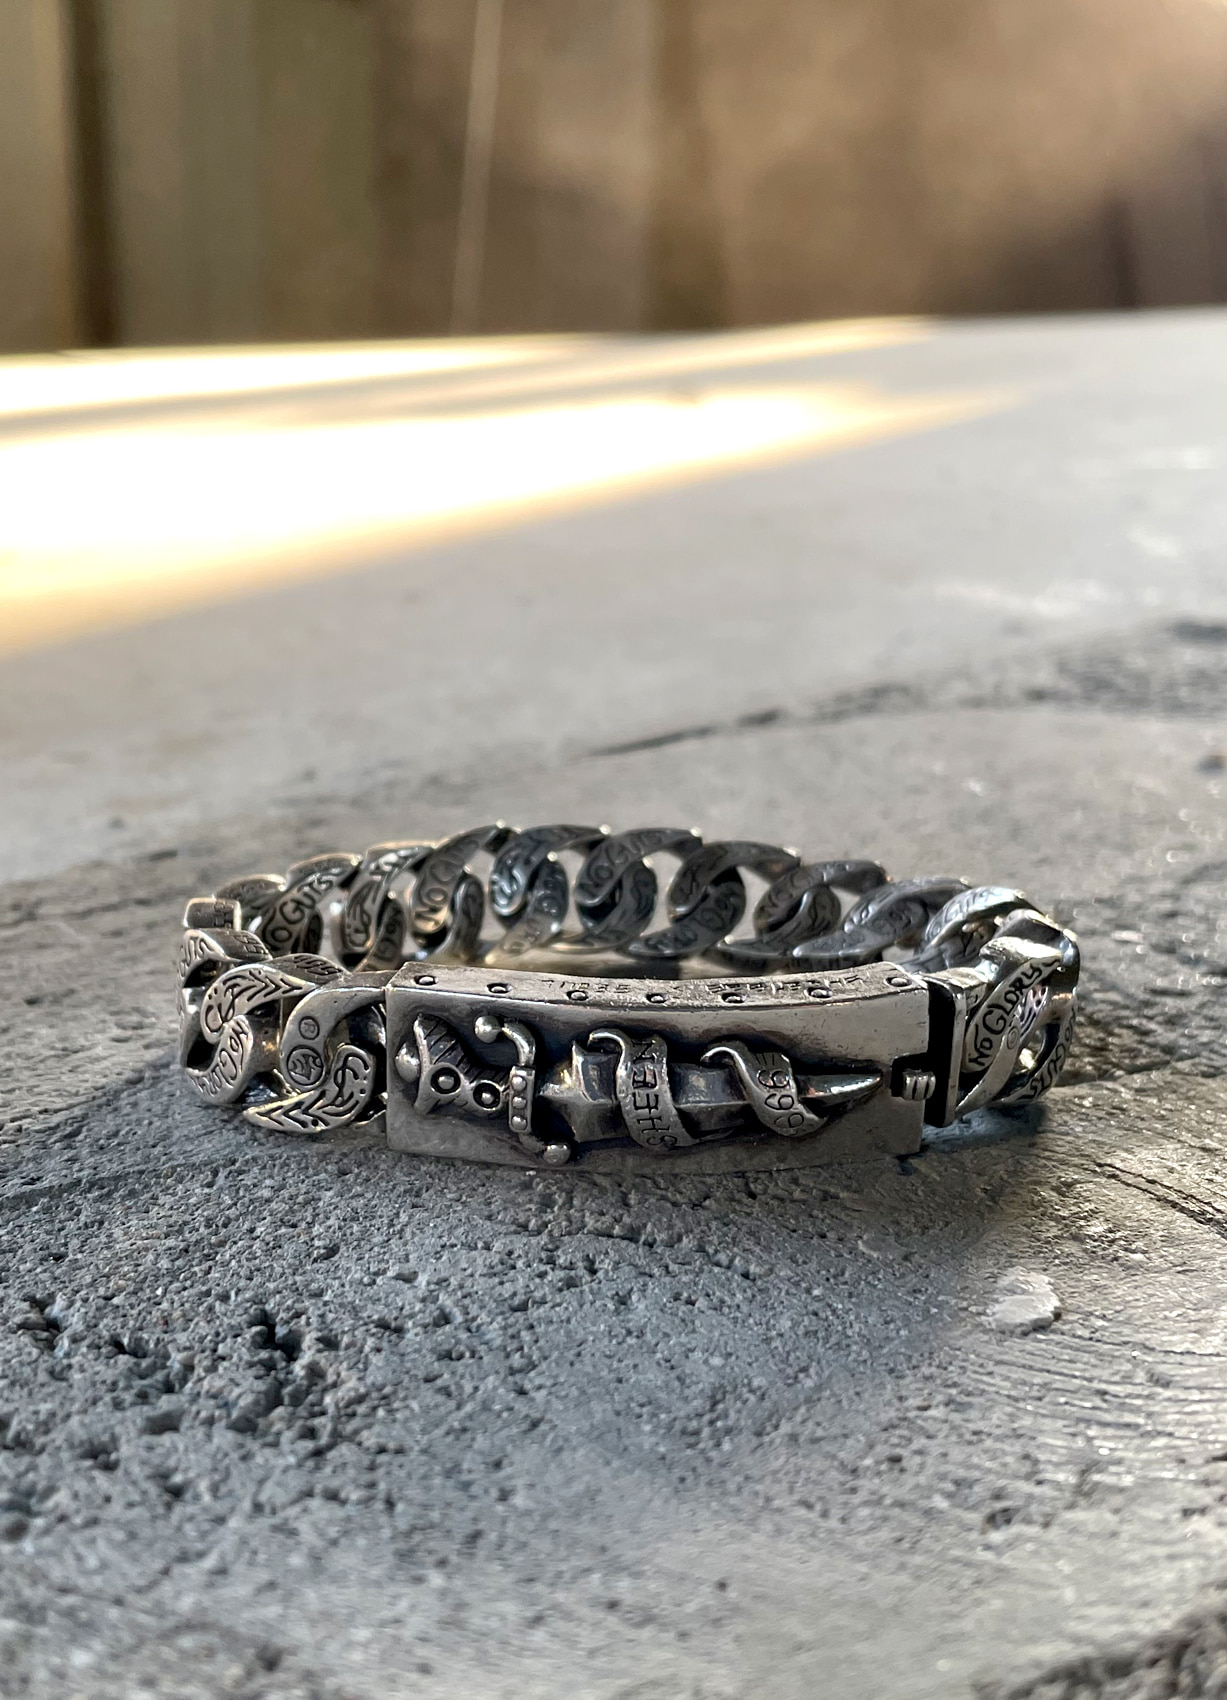 ORIGINAL DAGGER FULL SILVER CHAIN MIXED BRACELET 21cm STOCK